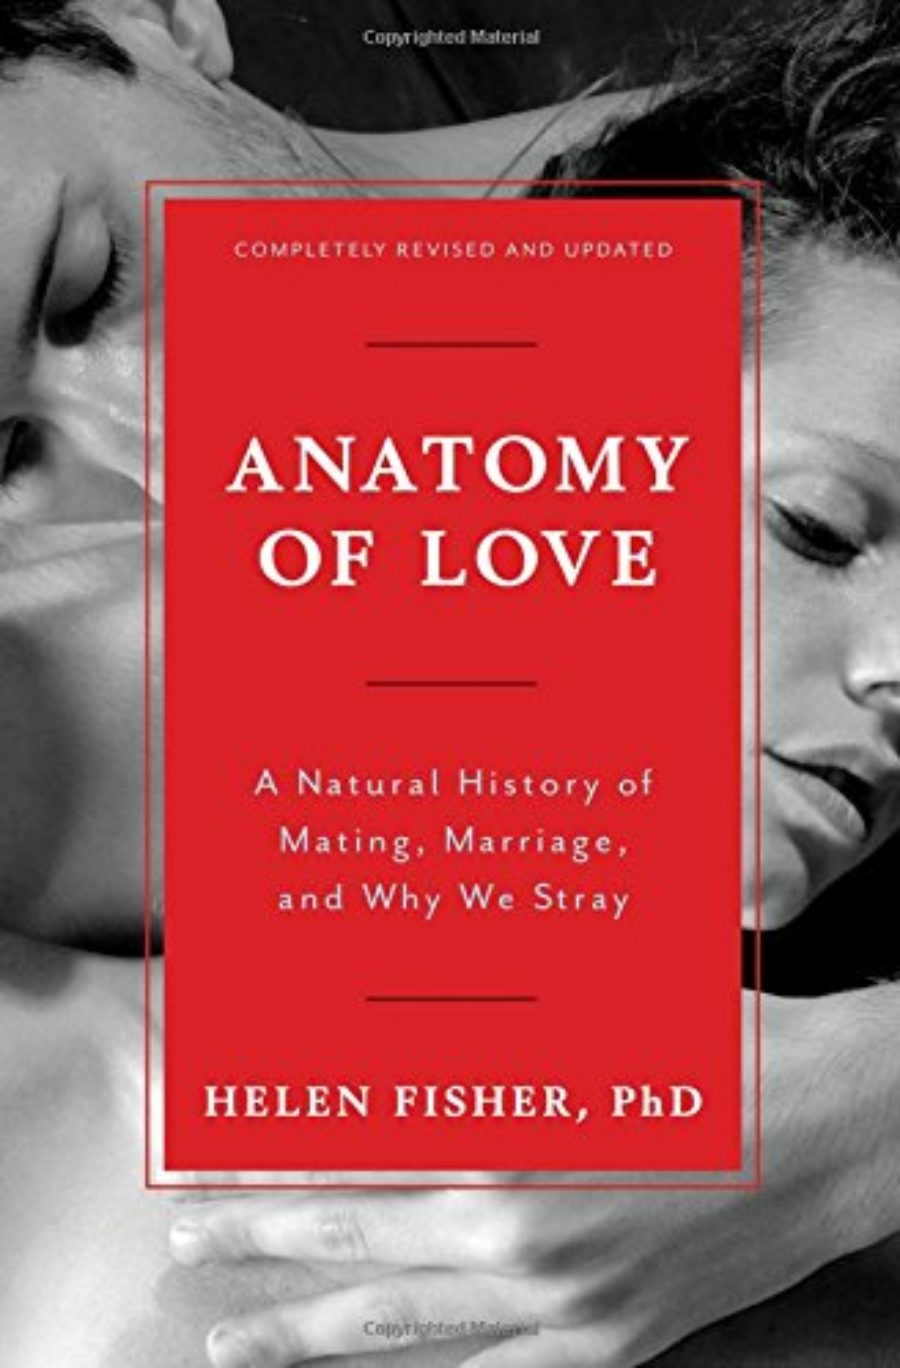 Cover of Anatomy of Love: A Natural History of Mating, Marriage, and Why We Stray (Completely Revised and Updated with a New Introduction)